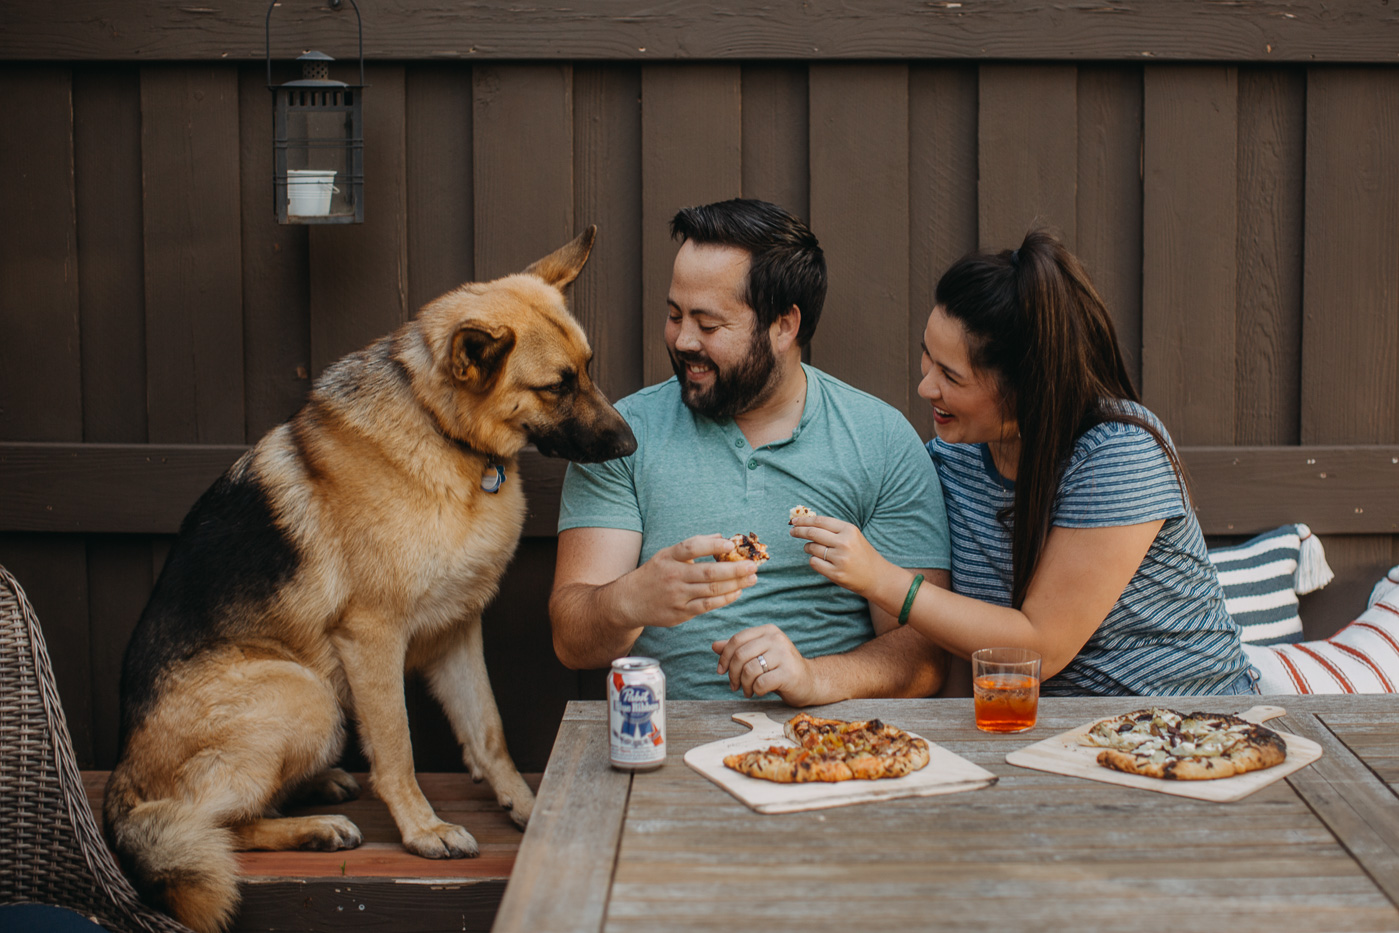 man & woman sitting at patio table enjoying homemade pizzas & drinks for pizza night with their dog.